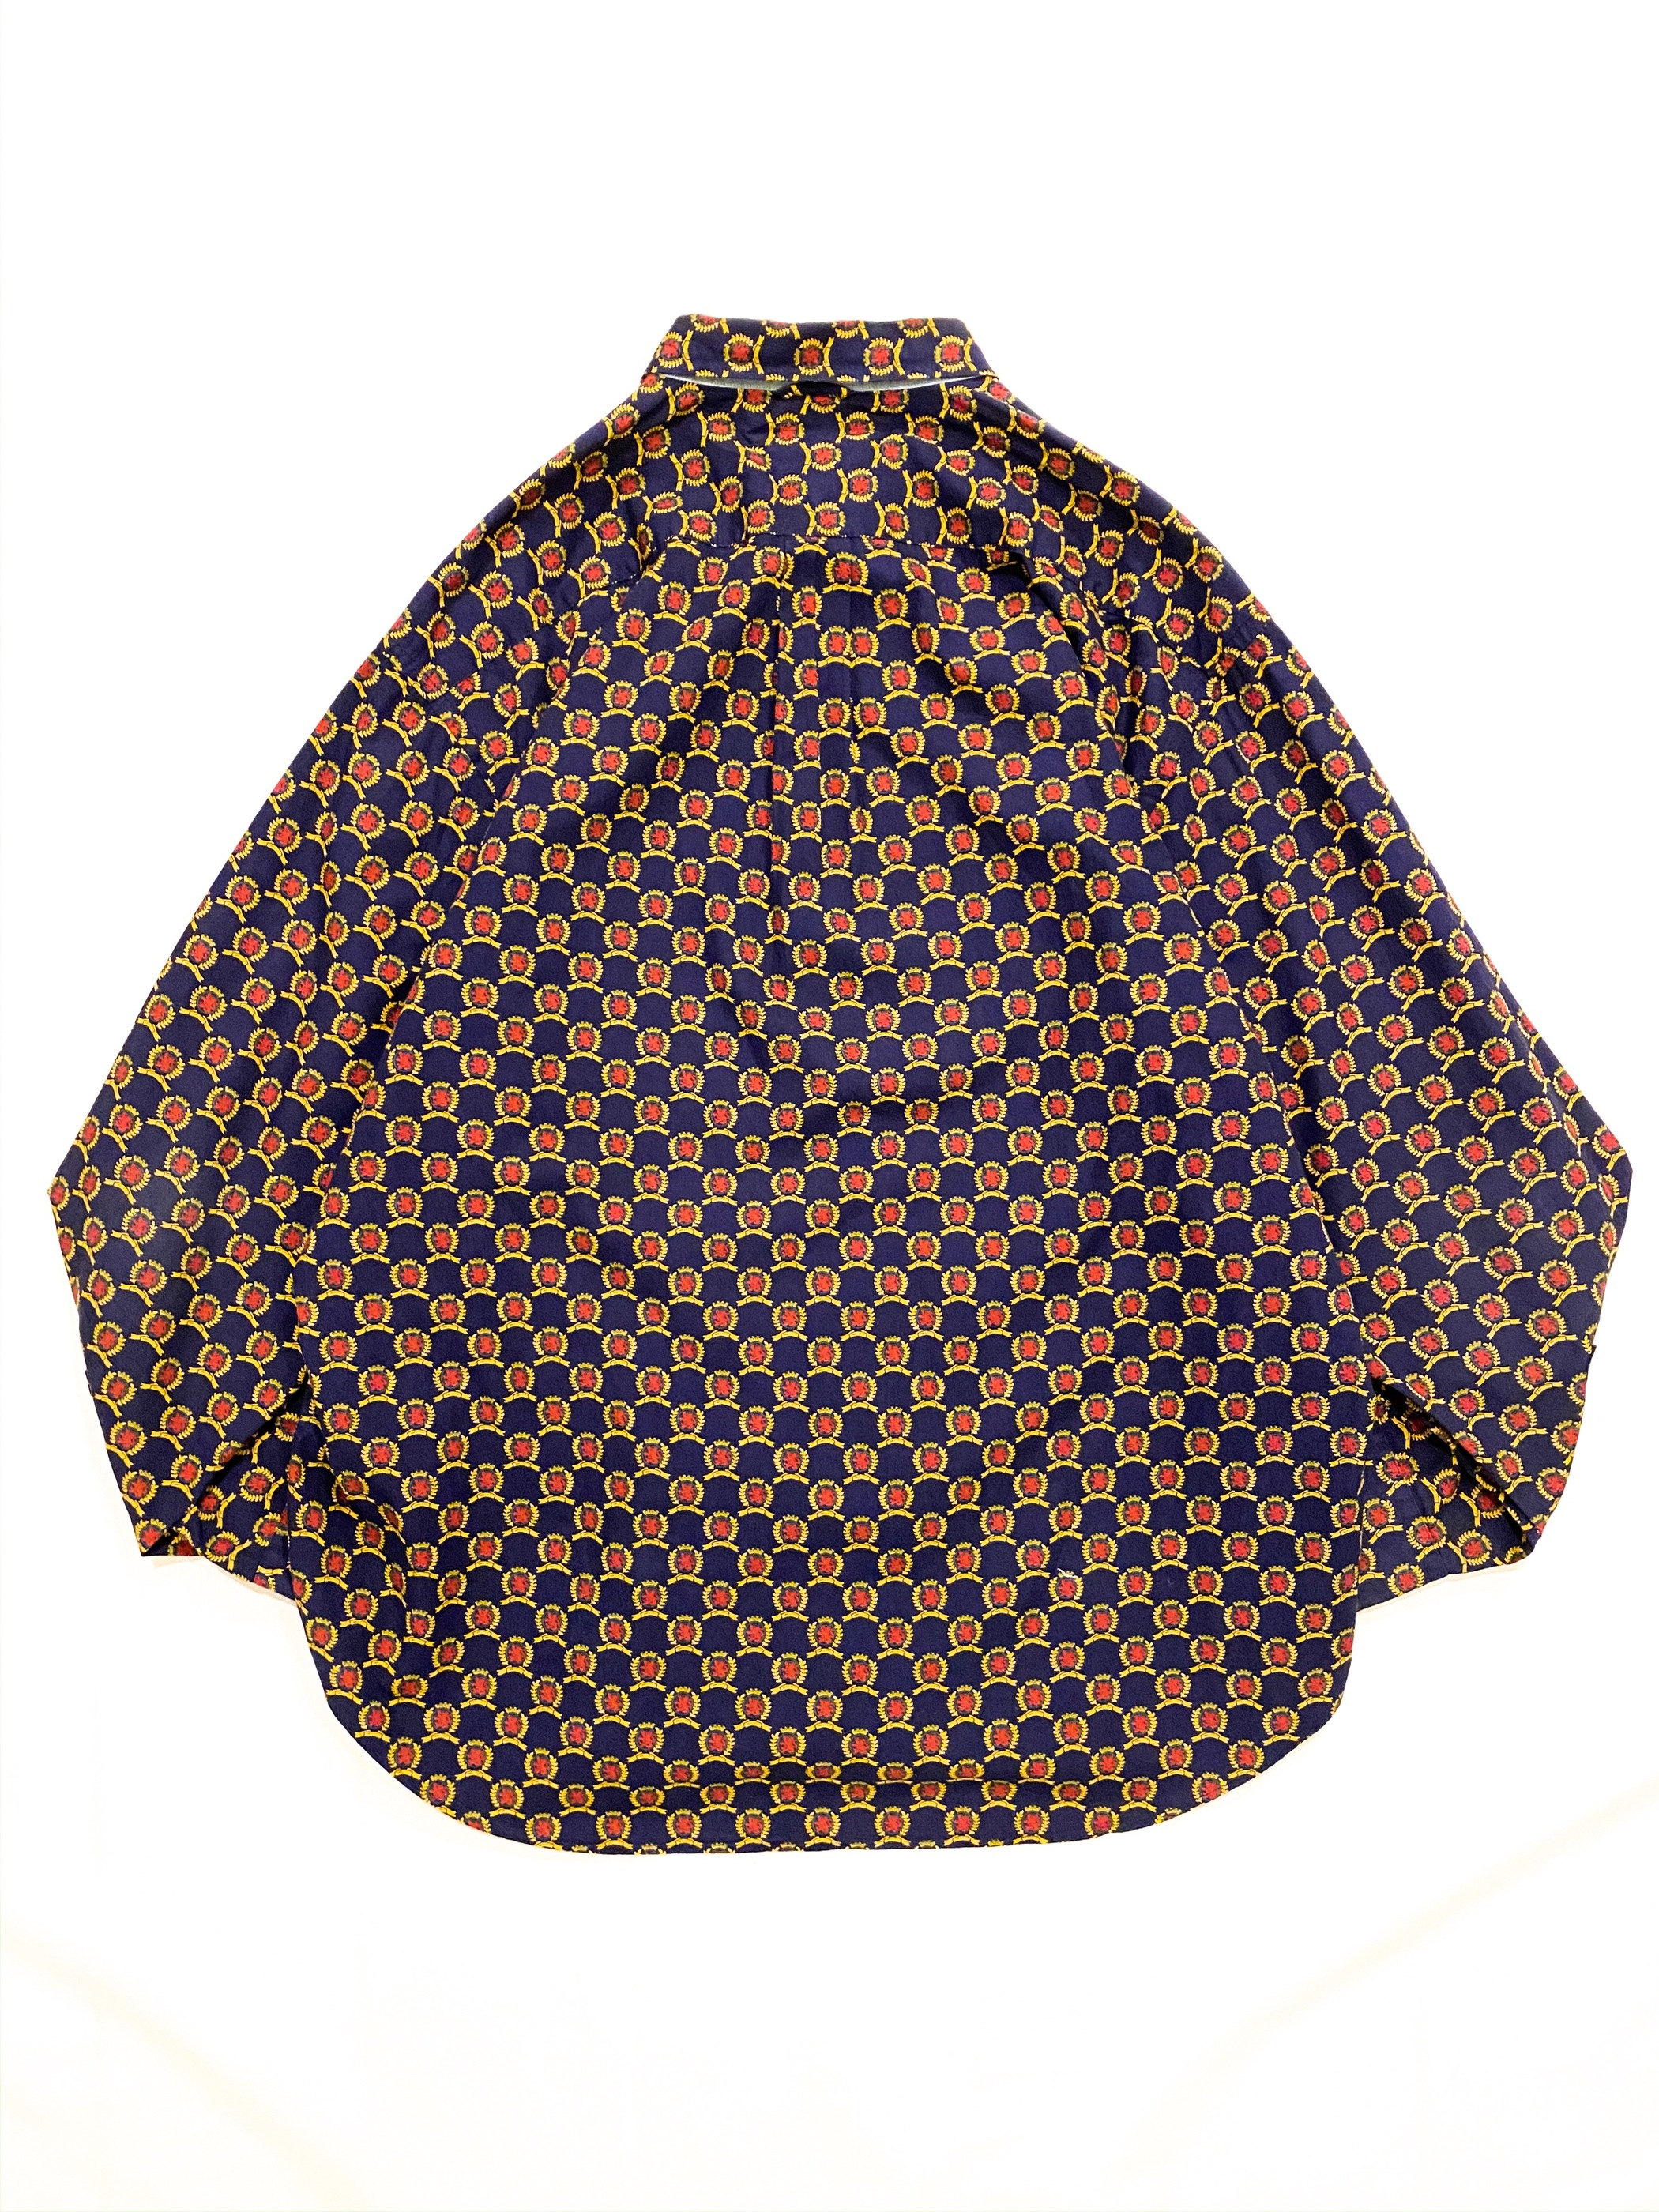 90's TOMMY HILFIGER all patterned shirt